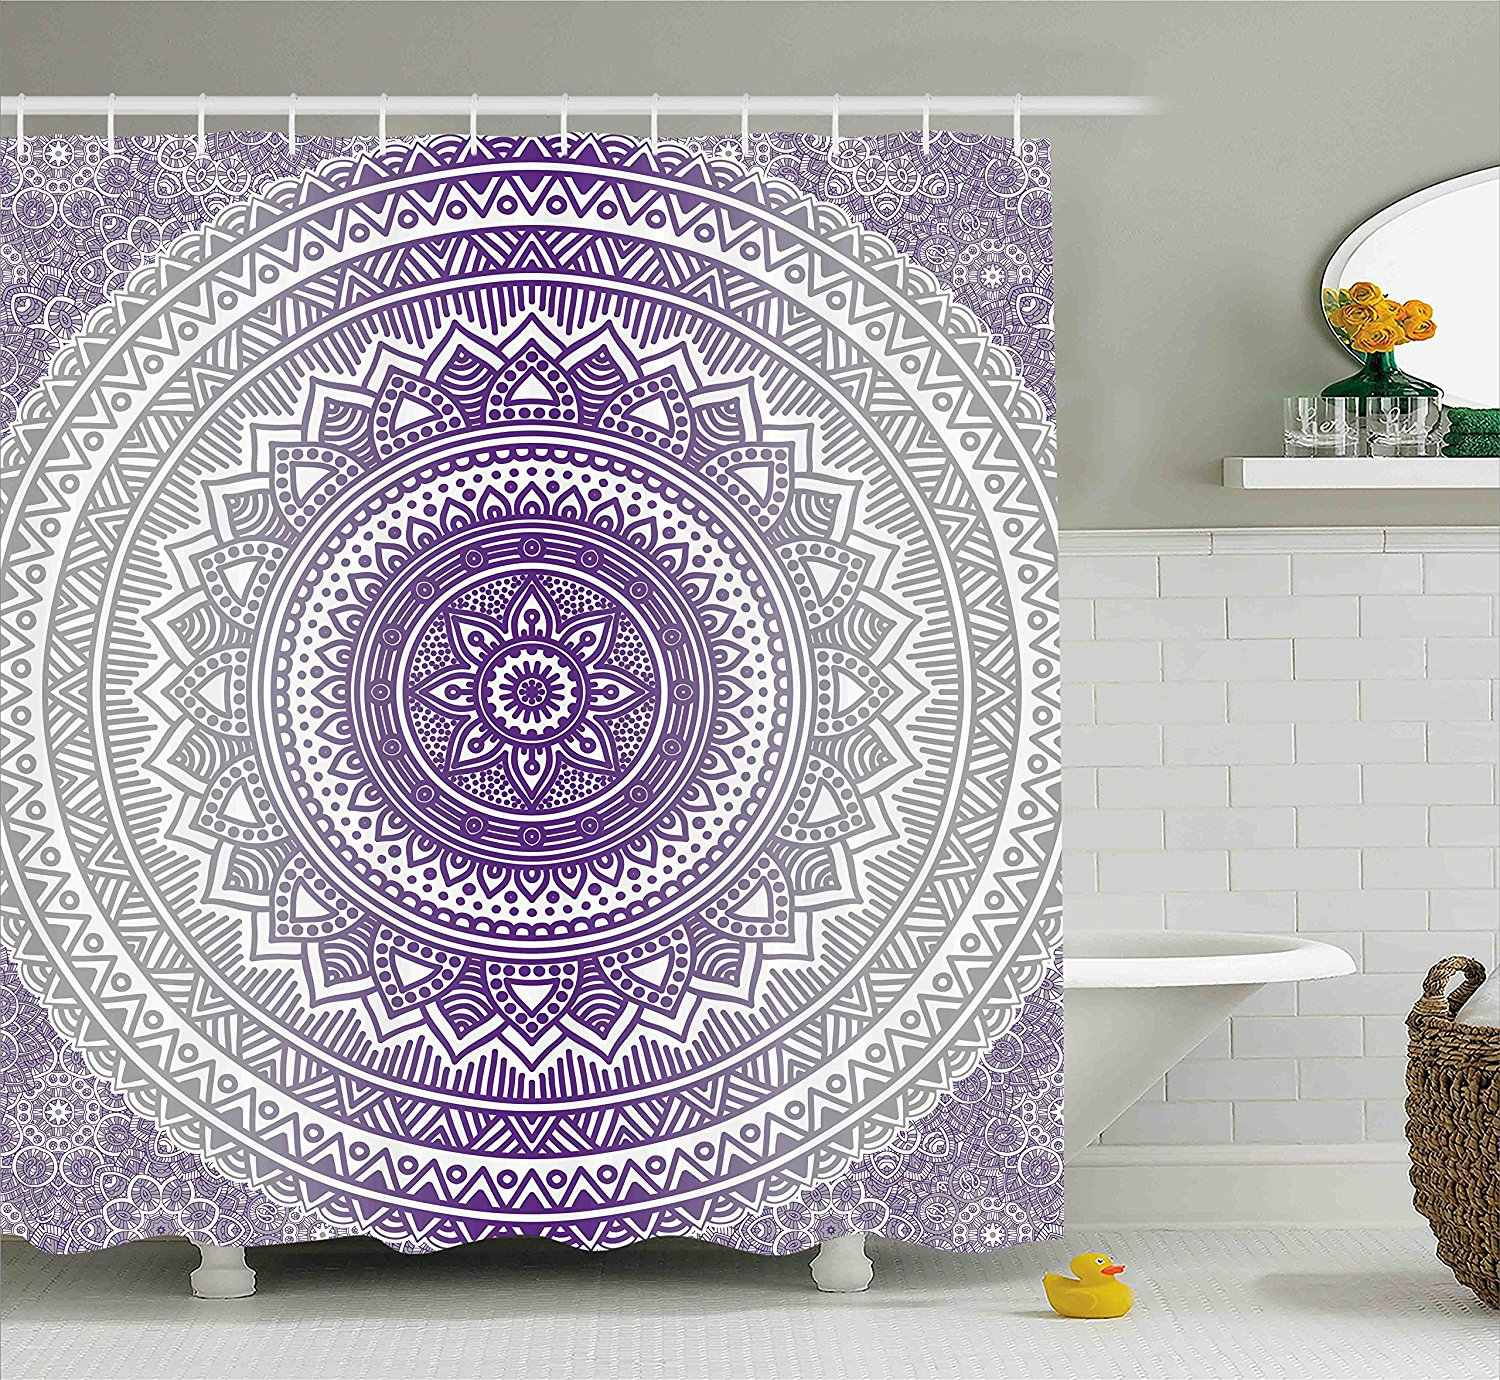 Grey And Purple Shower Curtain Eastern Traditional Of Cosmos Pattern Zen Boho Ombre Mandala Design Print Fabric Bathroom Set Shower Curtains Aliexpress